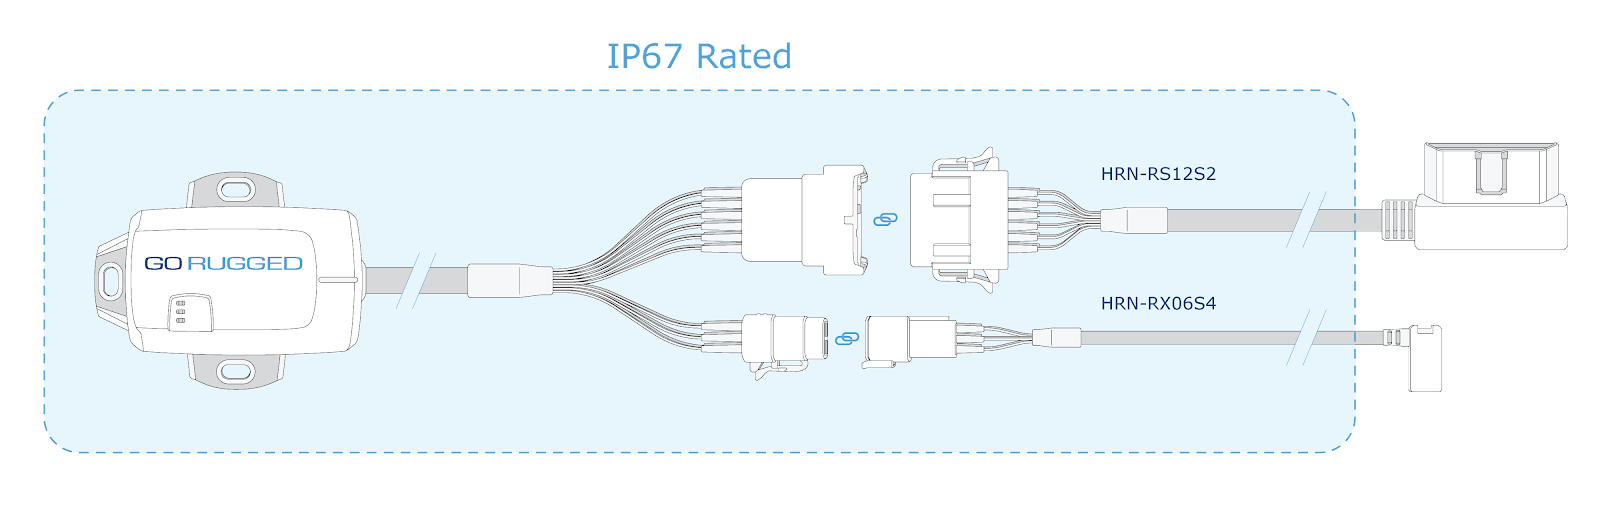 Go Rugged Support Document Wiring Harness Design Jobs In Canada Ip67 Rating Diagram V1